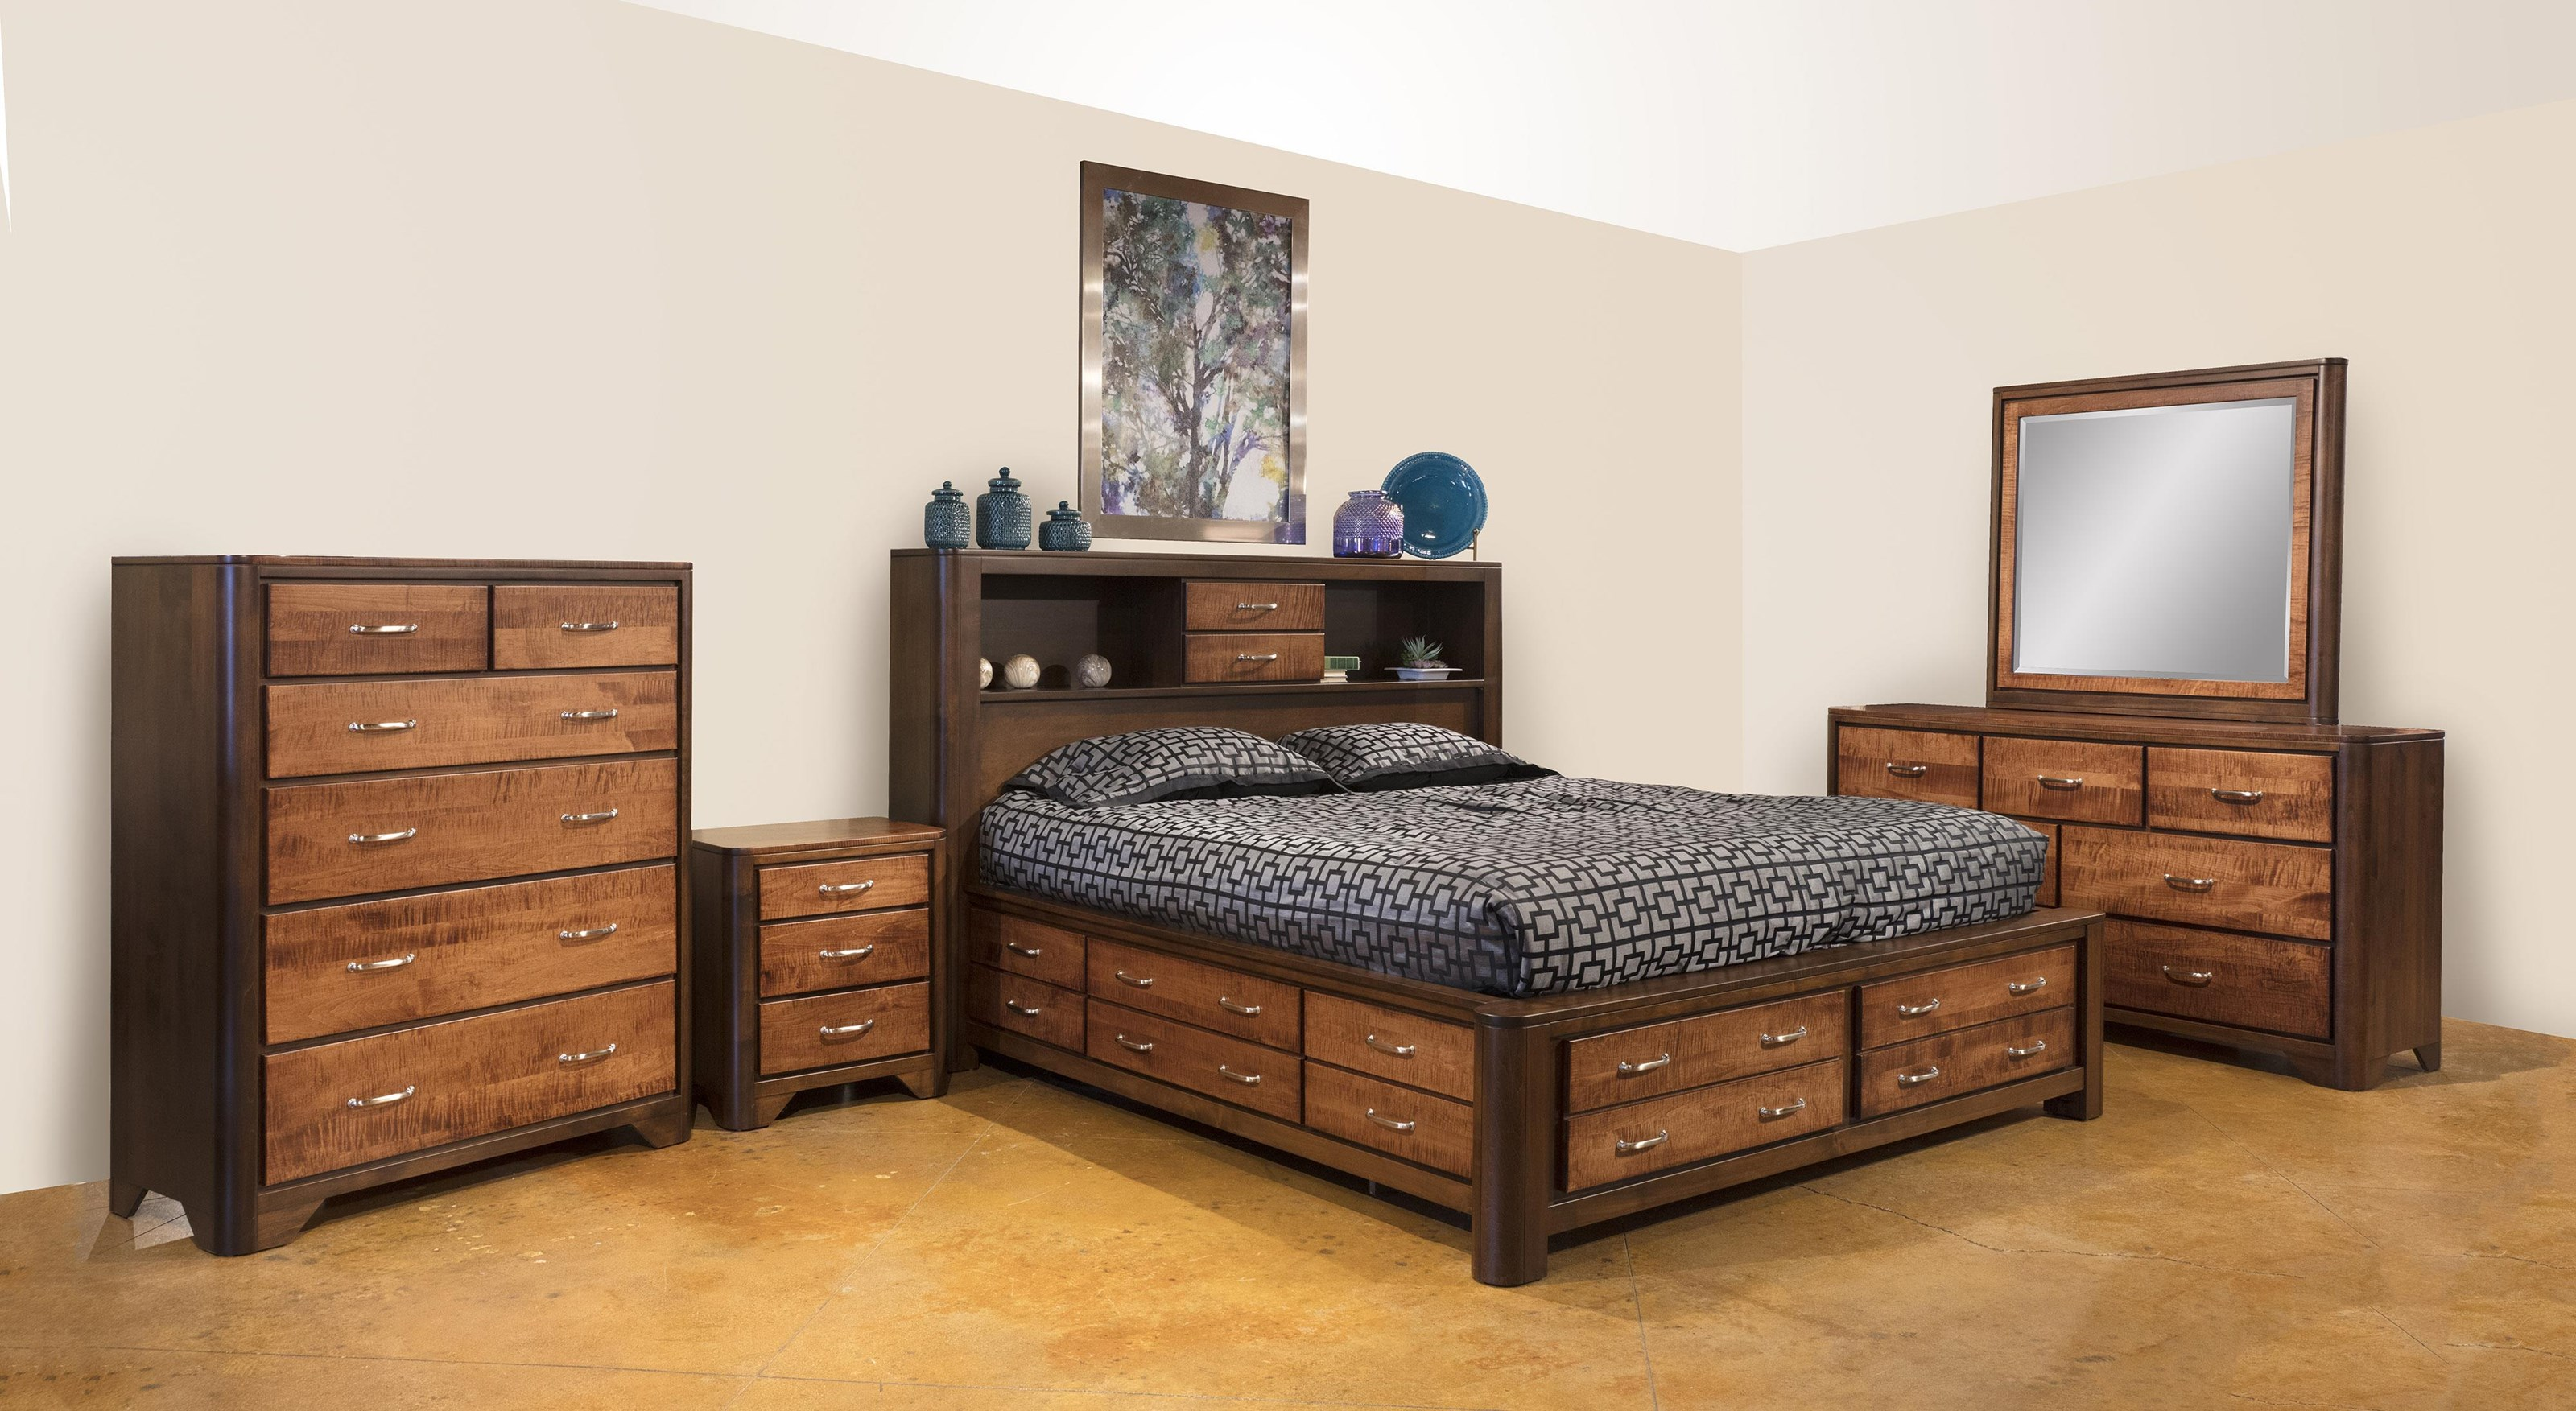 London 5pc Queen Bedroom Group by Wayside Custom Furniture at Wayside Furniture